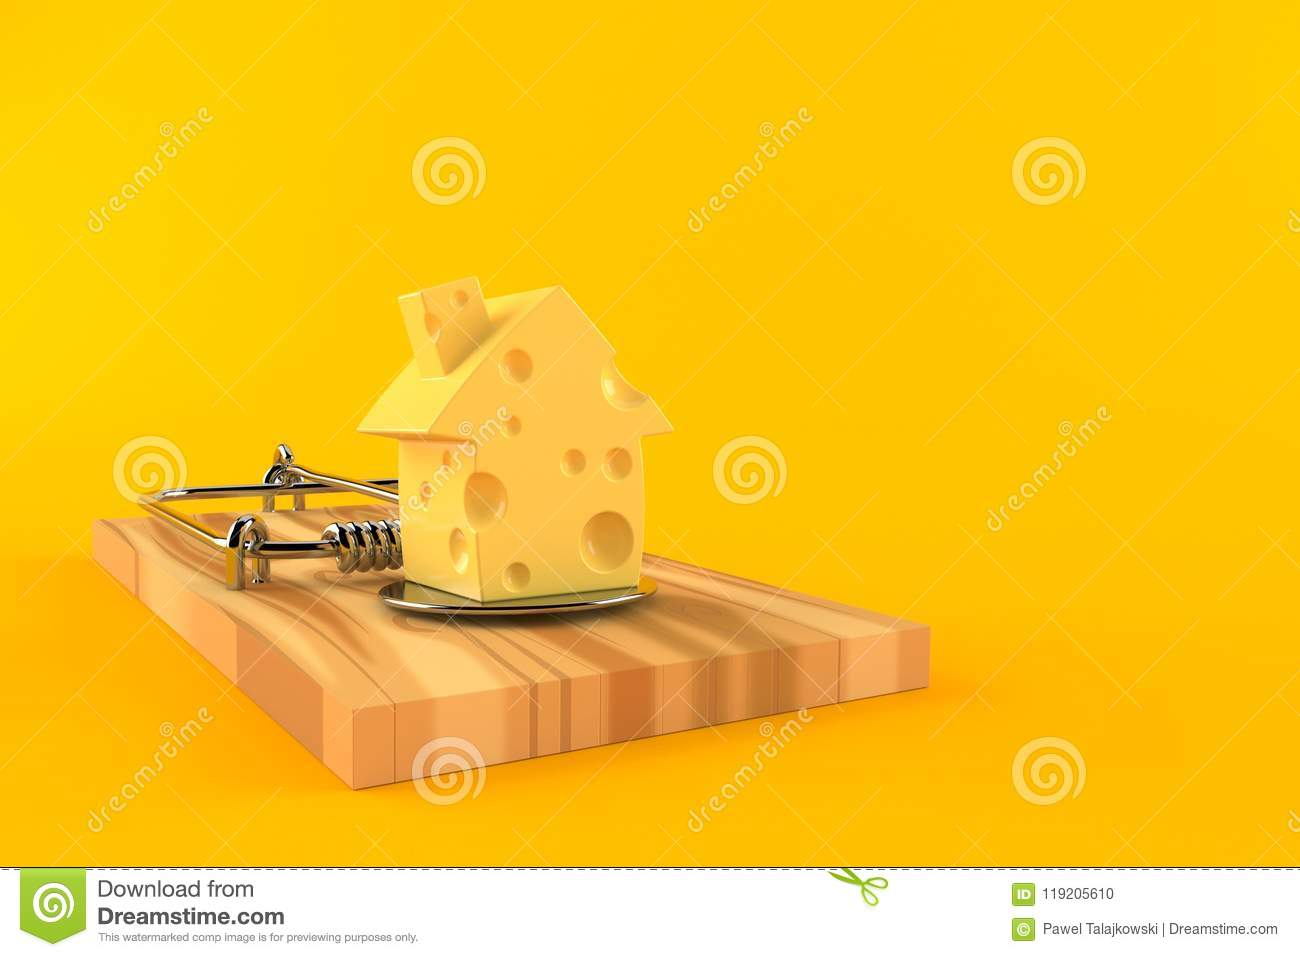 Macaroni And Cheese png free download - pasta gravy macaroni and cheese  noodle mountain house